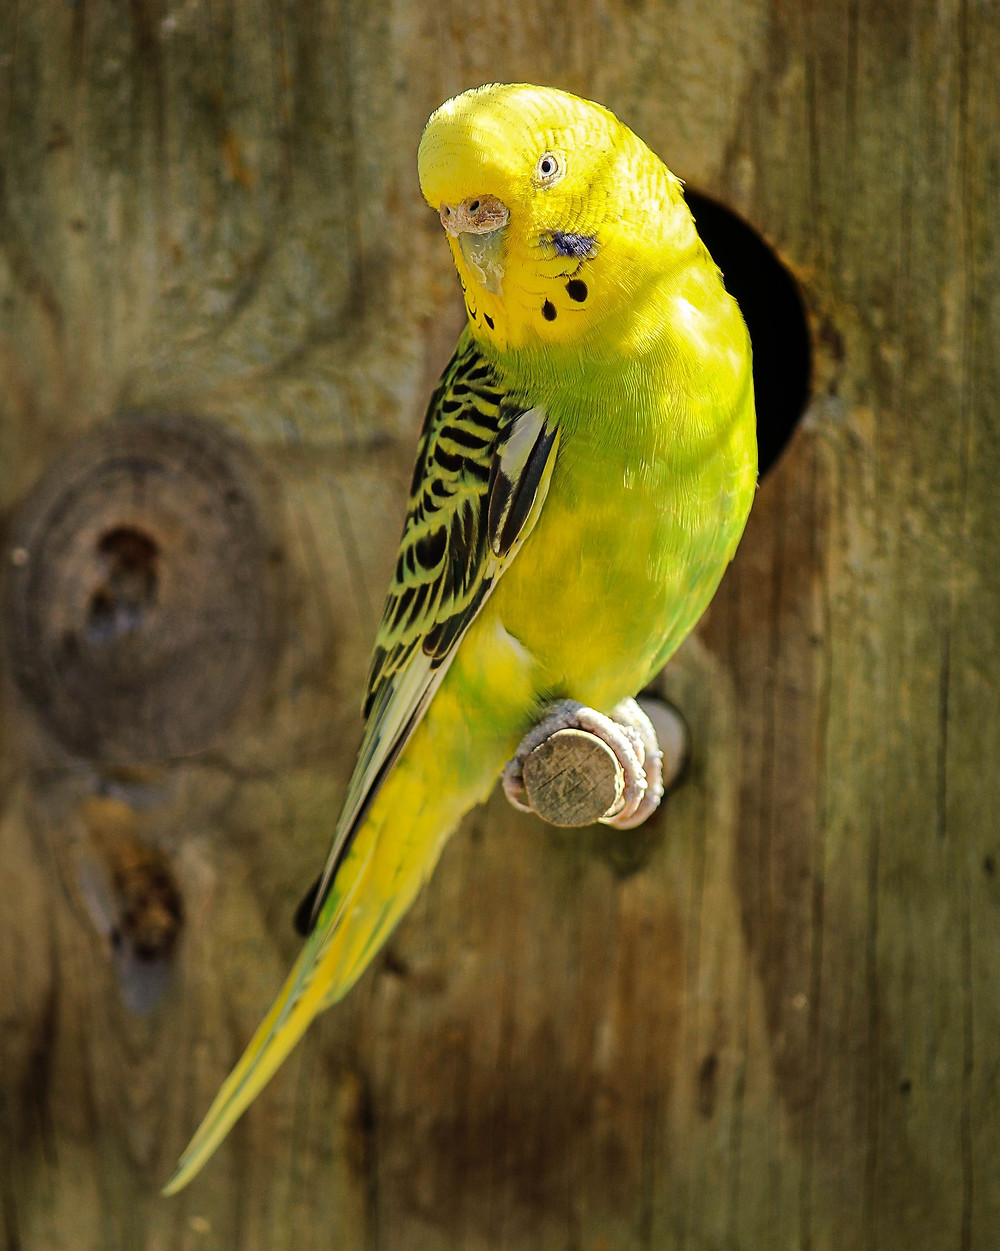 A yellow budgie perching